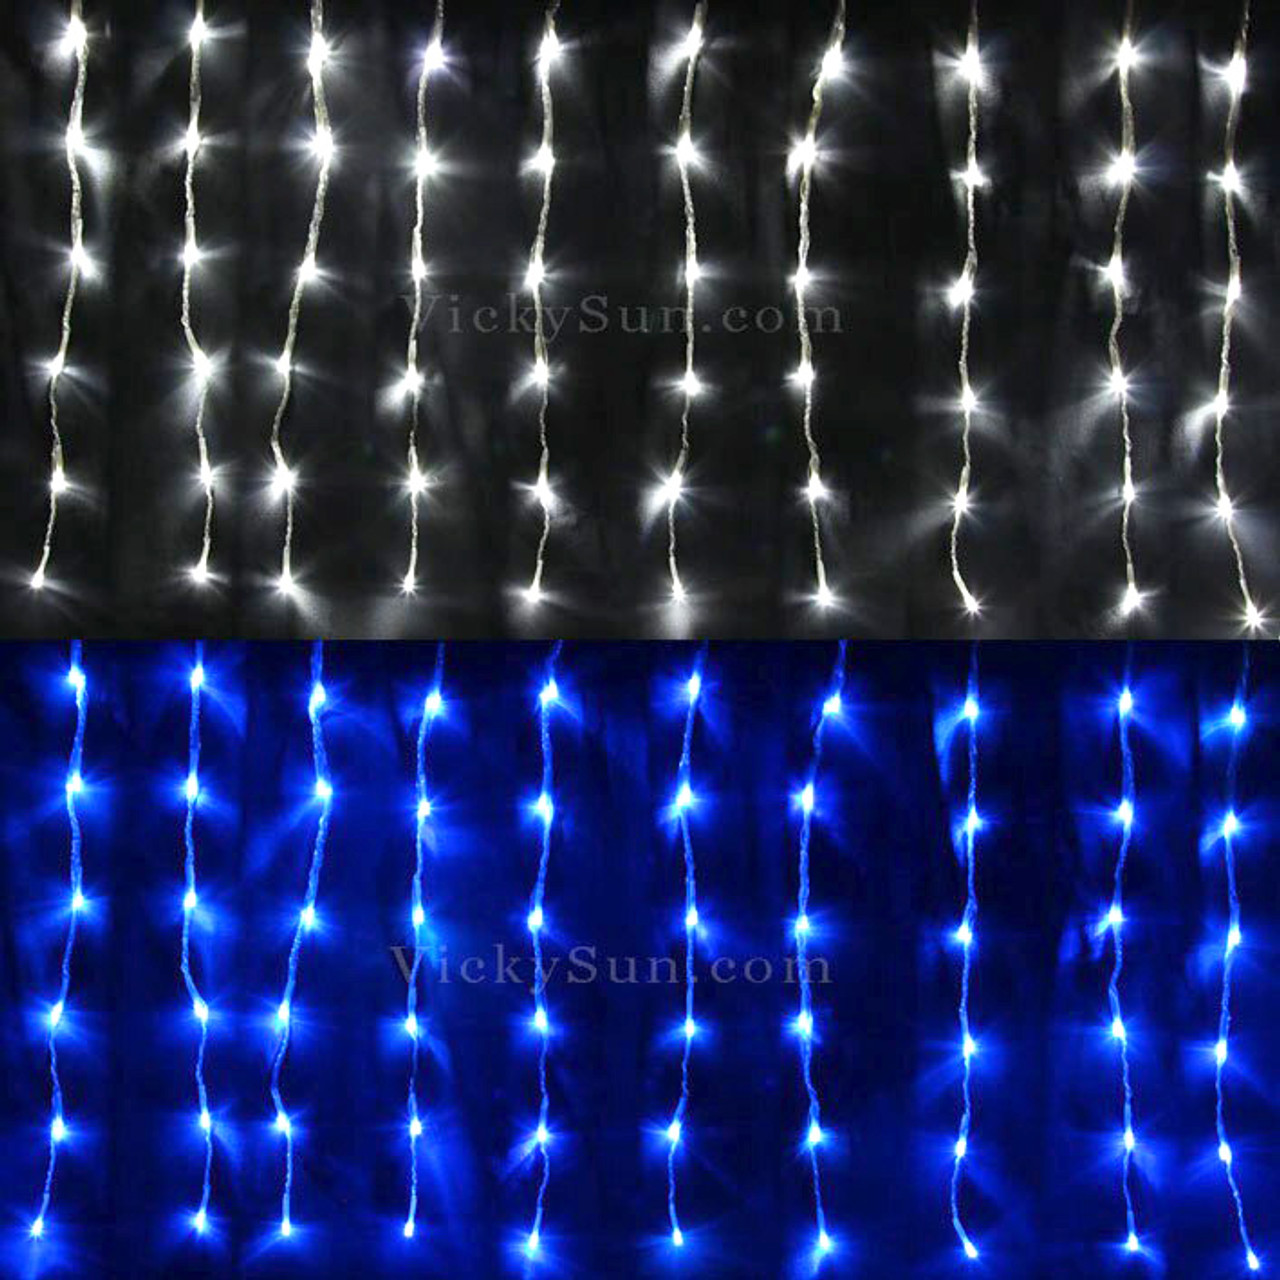 20m 528 Led Colour Changing Blue White Waterfall Memory Icicle Christmas Lights